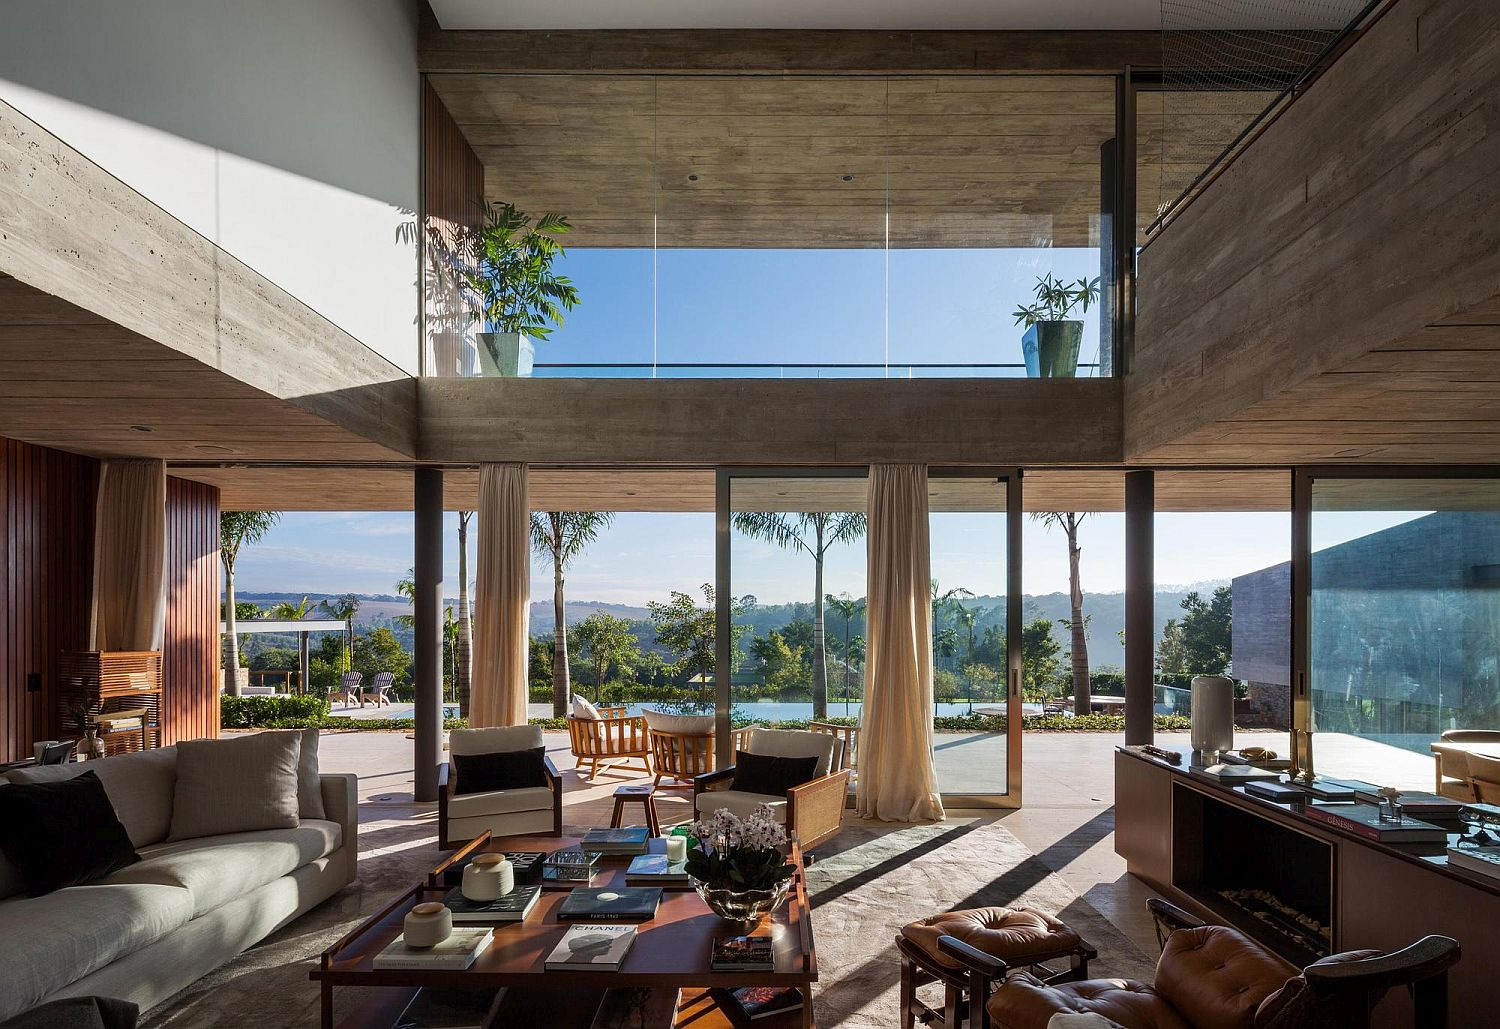 Open double-height living area opens up to the lovely view outside